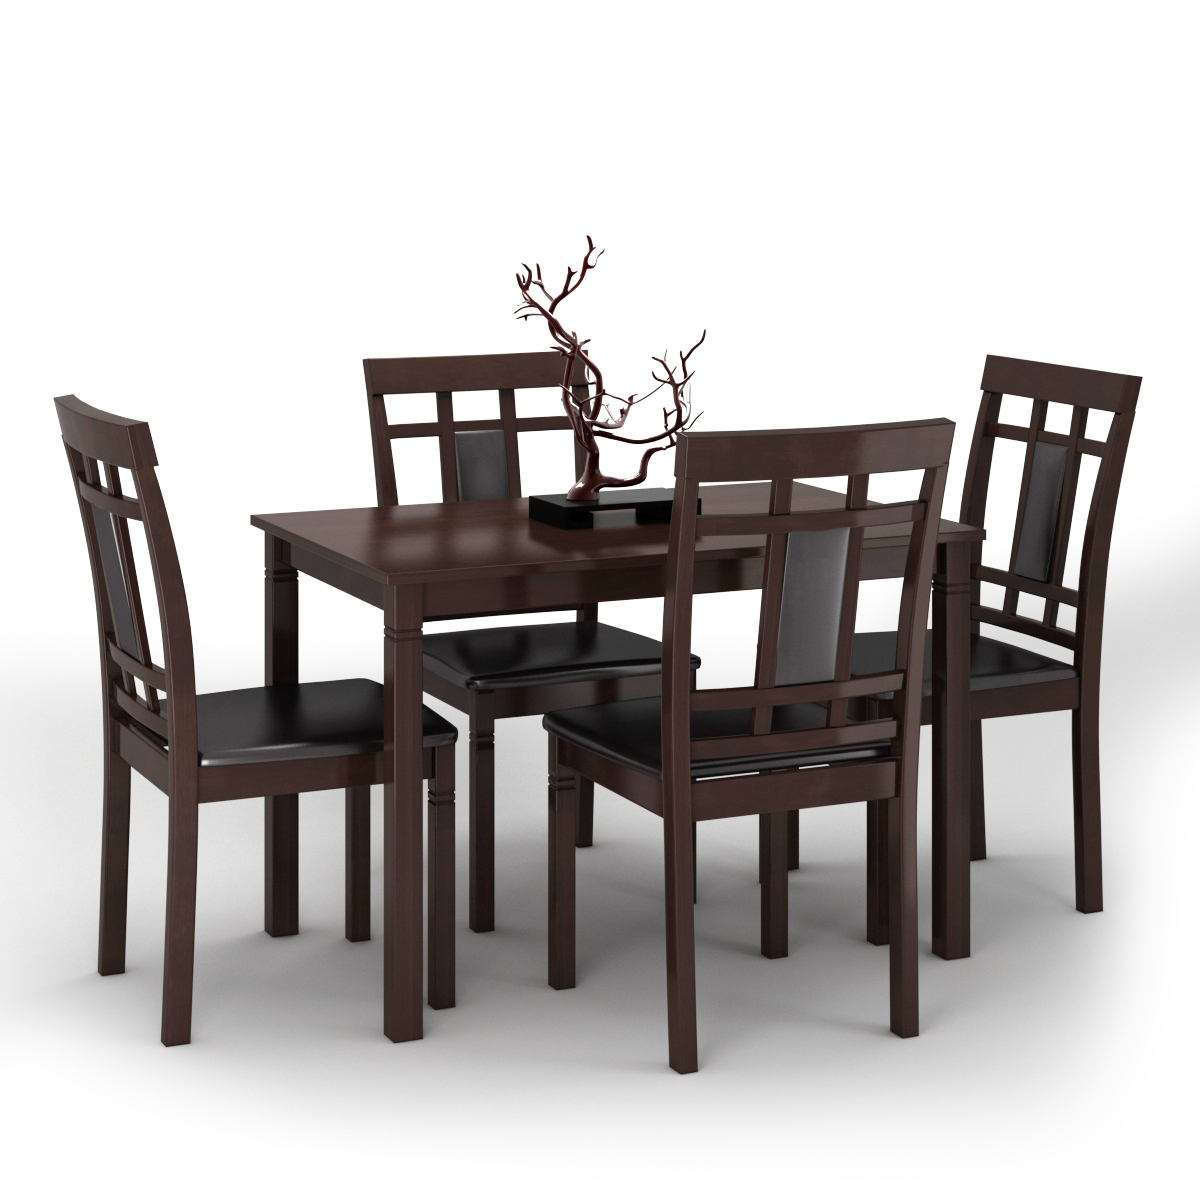 5PCS Home Kitchen Dining Room Table Set Simple Style w/4 Padded Chairs Brown